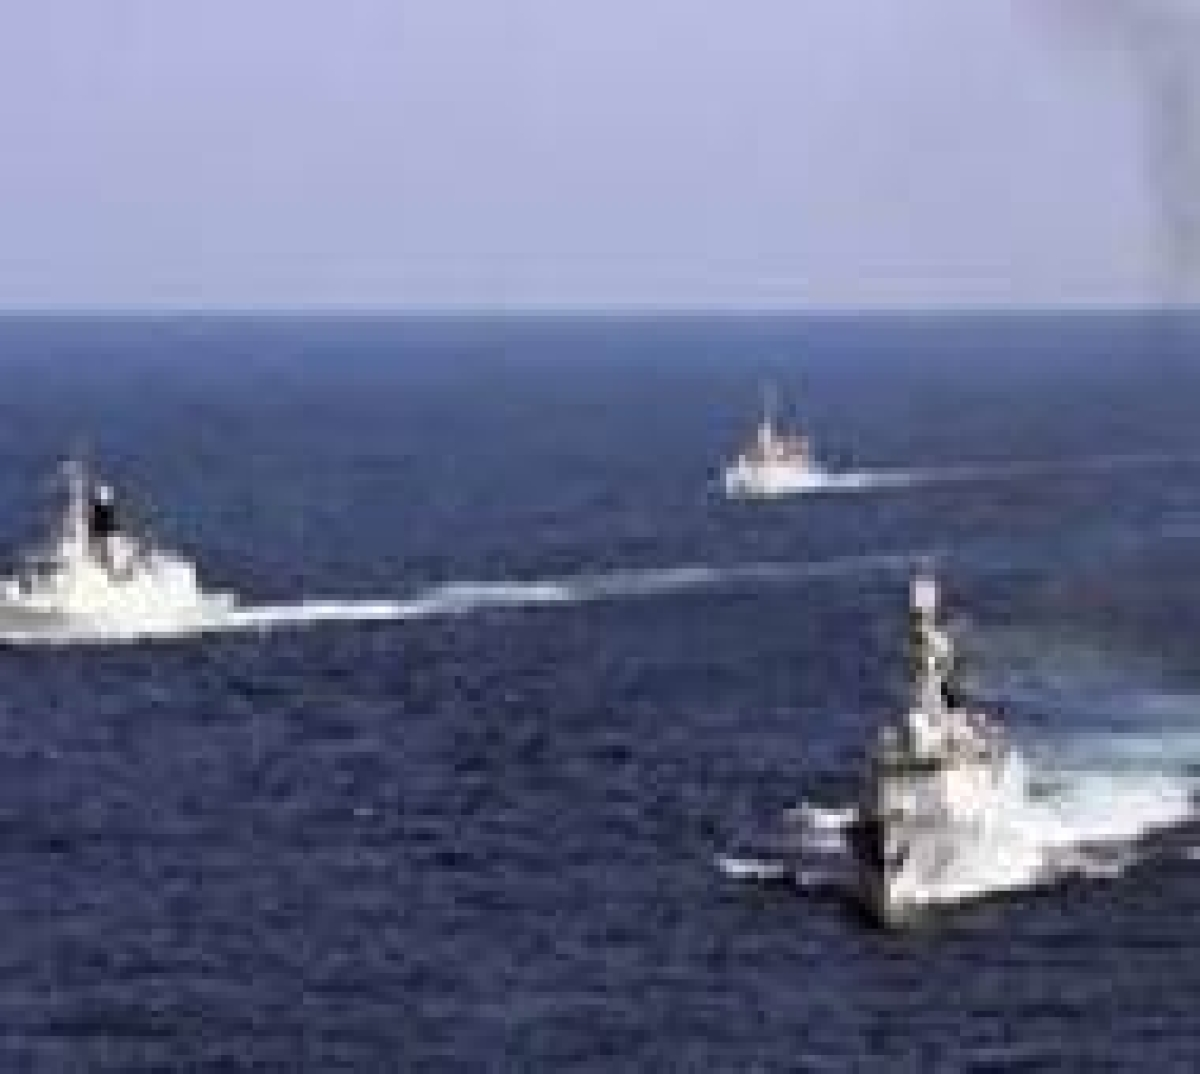 Chinese military ship enters Japanese waters